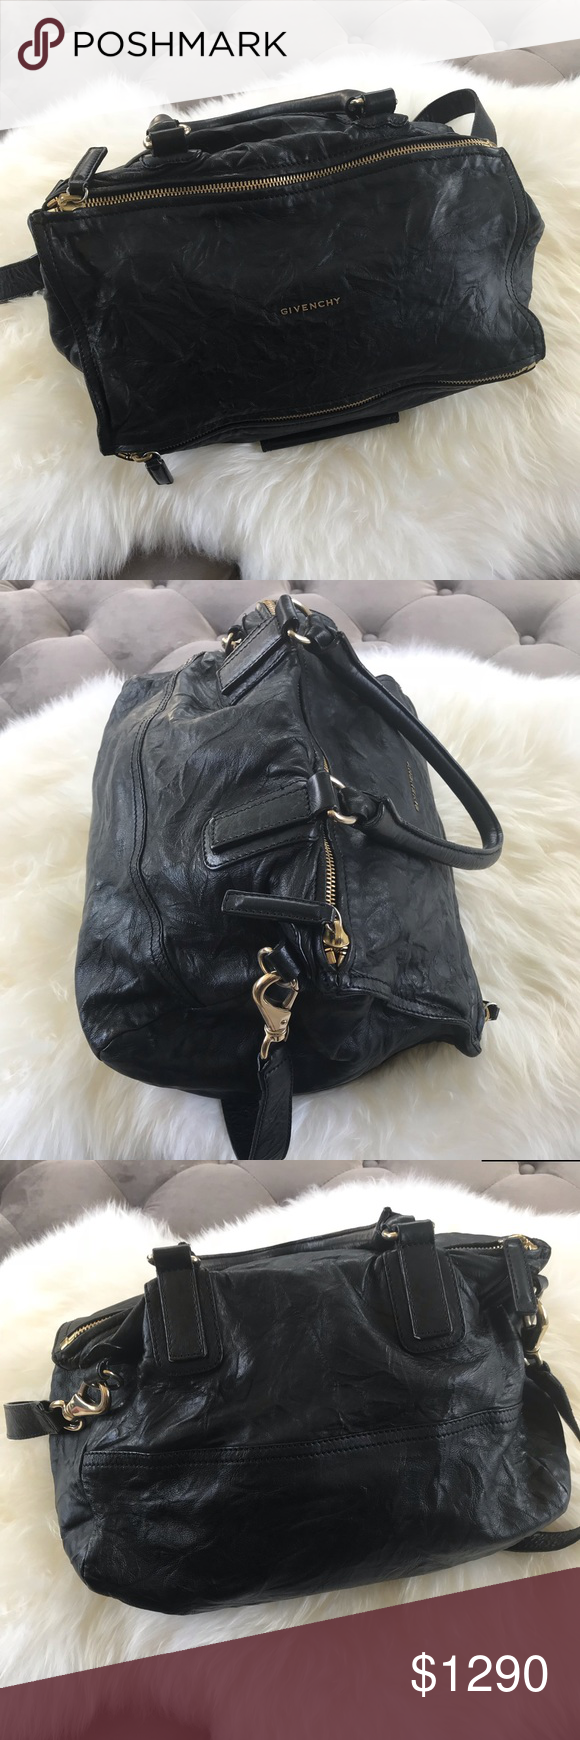 GIVENCHY large Pandora black Wrinkled Sheepskin Overall Condition  Gently  used Material  Black wrinkled sheepskin e036e37ddc633